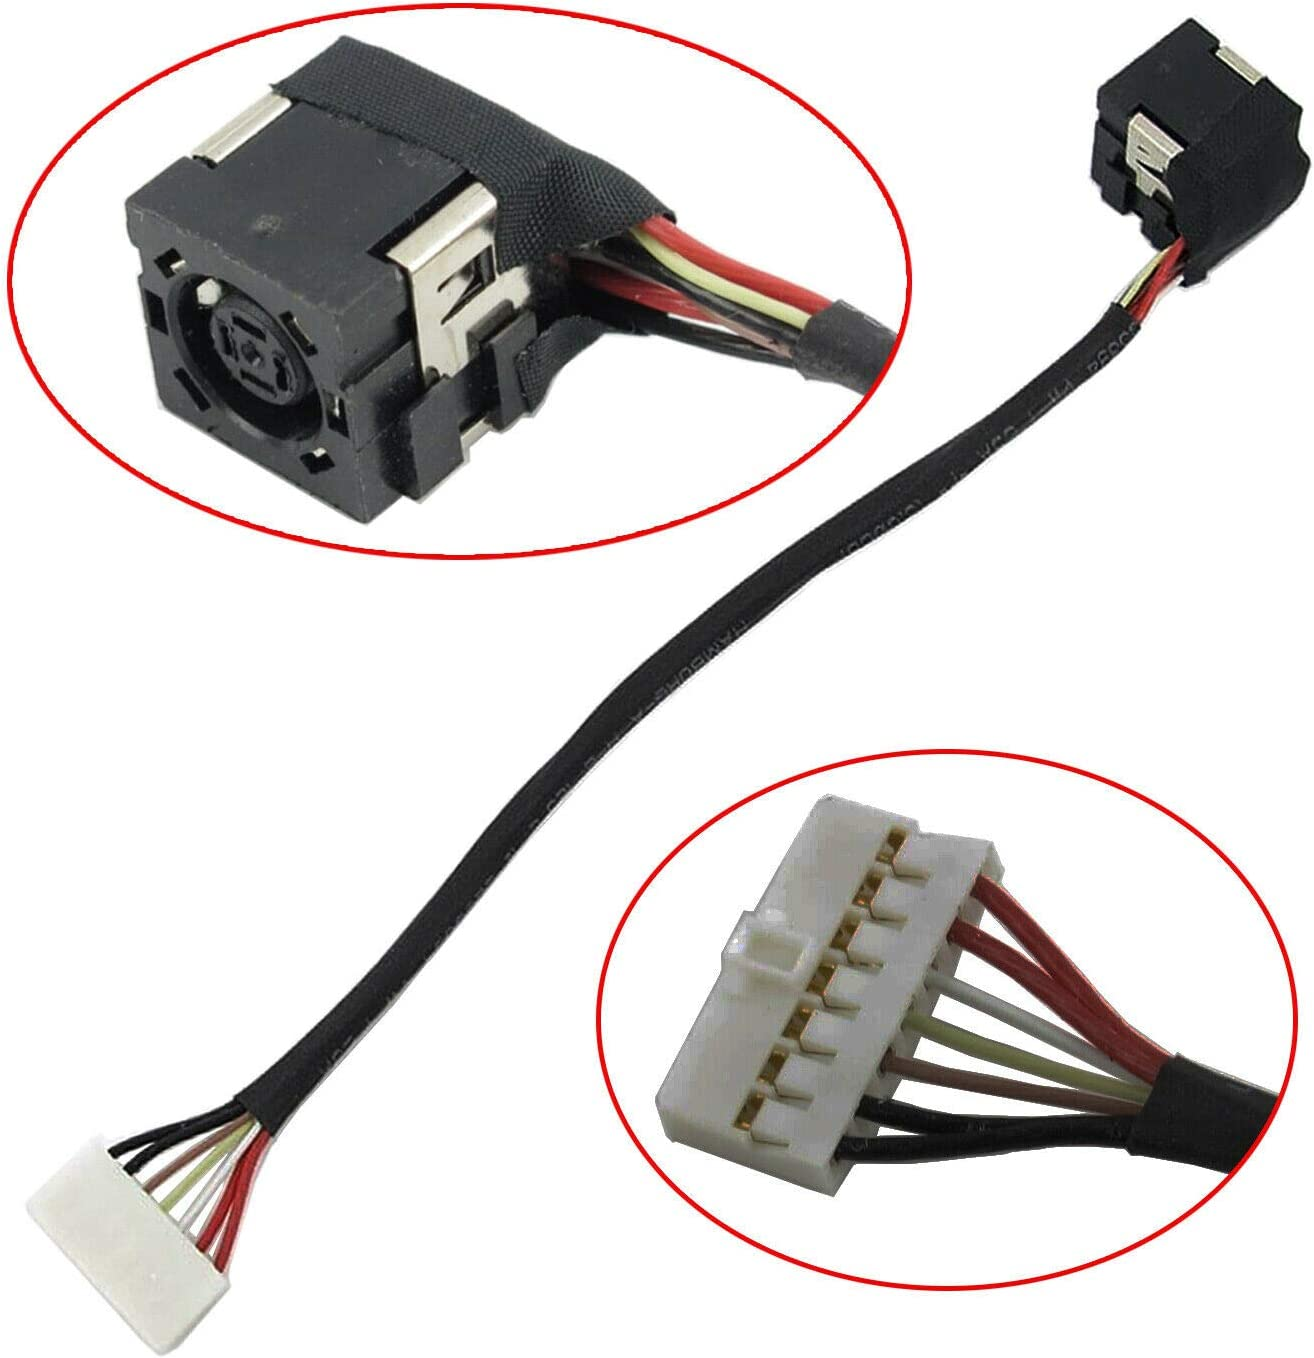 Nobrand Replacement DC Power Jack Charging Port Harness Cable Plug in Connector Socket for DELL Inspiron 15-3000 Series 3543 3542 3541 3878